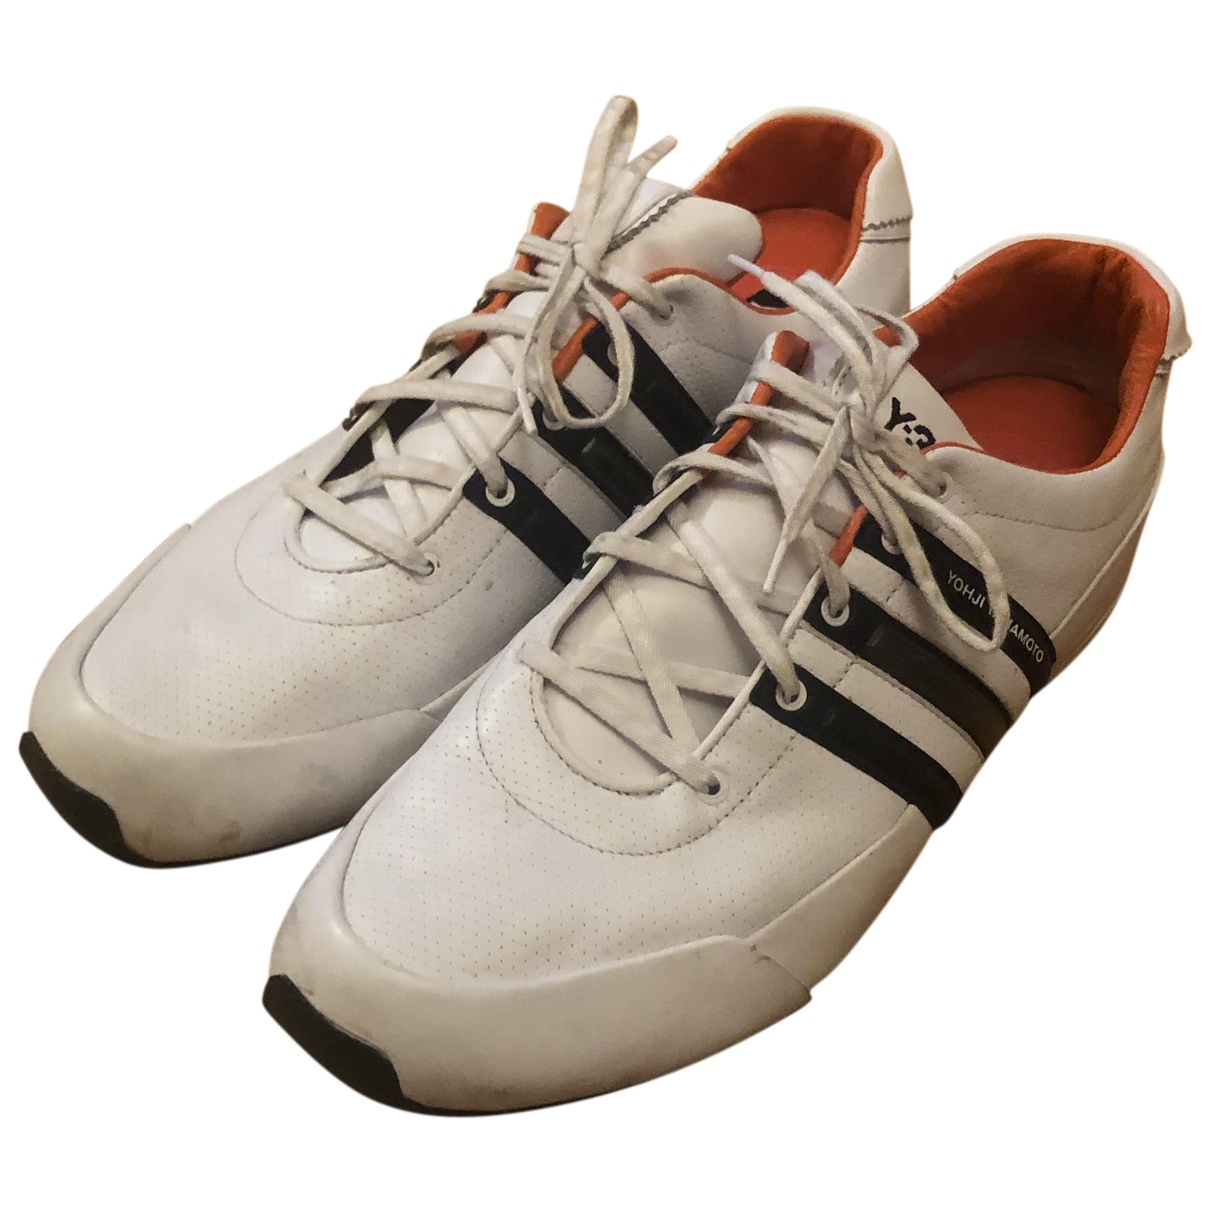 Y-3 By Yohji Yamamoto N White Leather Trainers for Men 14 US